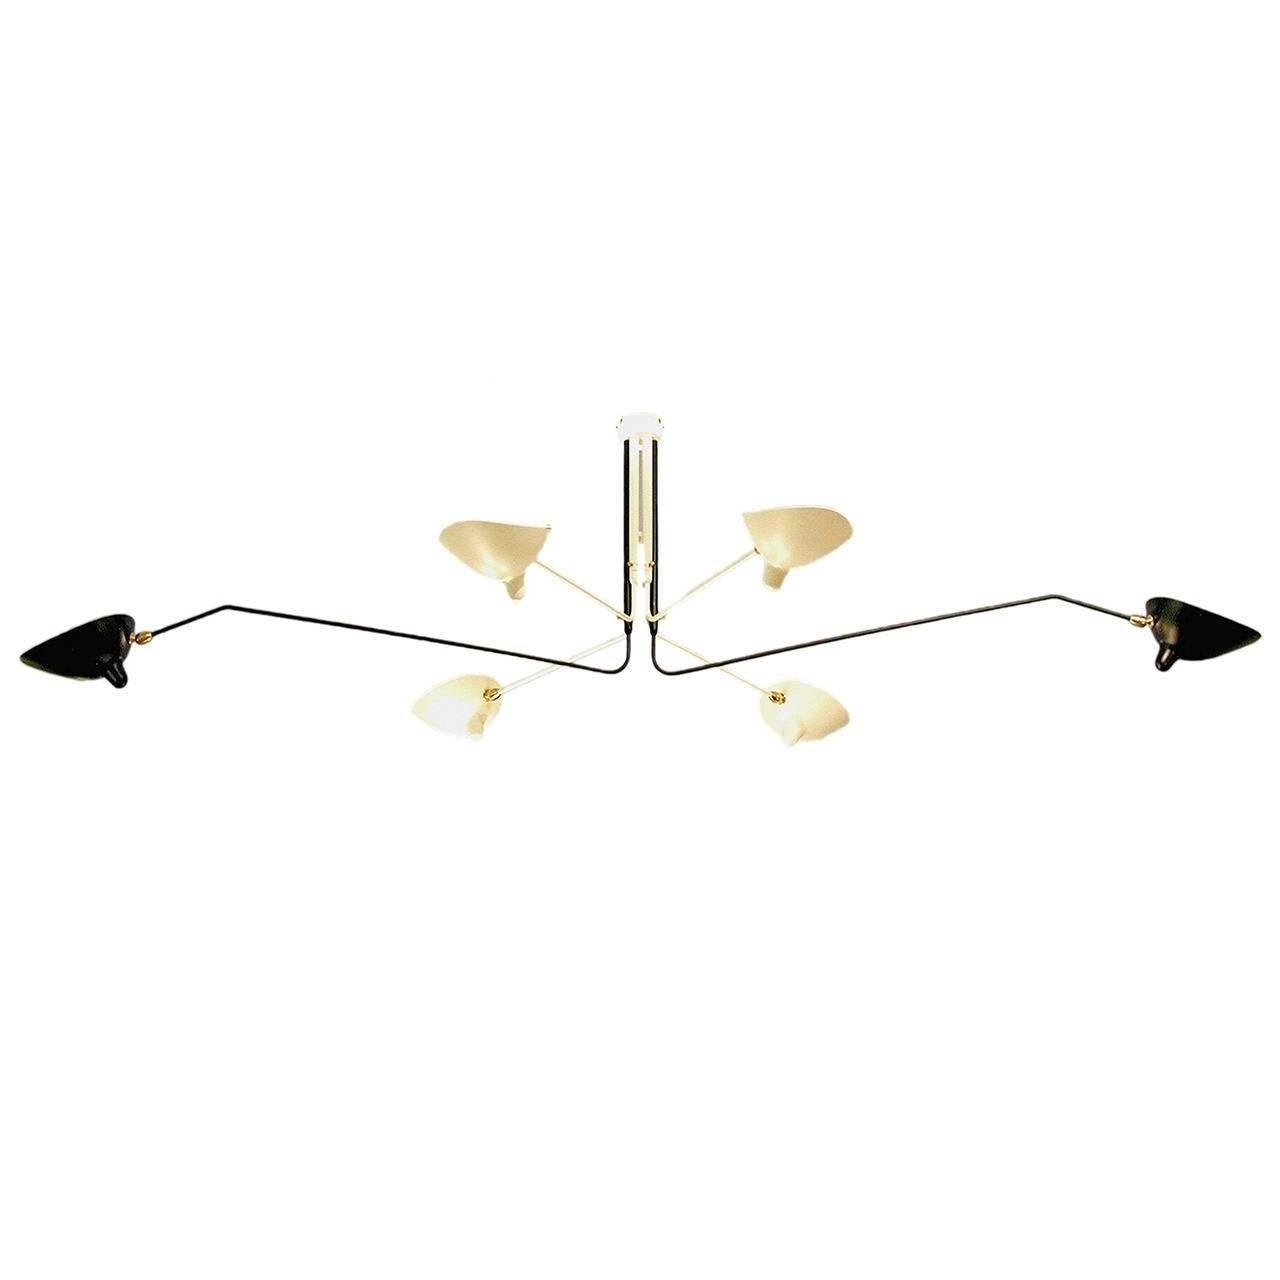 Ceiling Lamp with Six Rotating Arms in Black and White by Serge Mouille